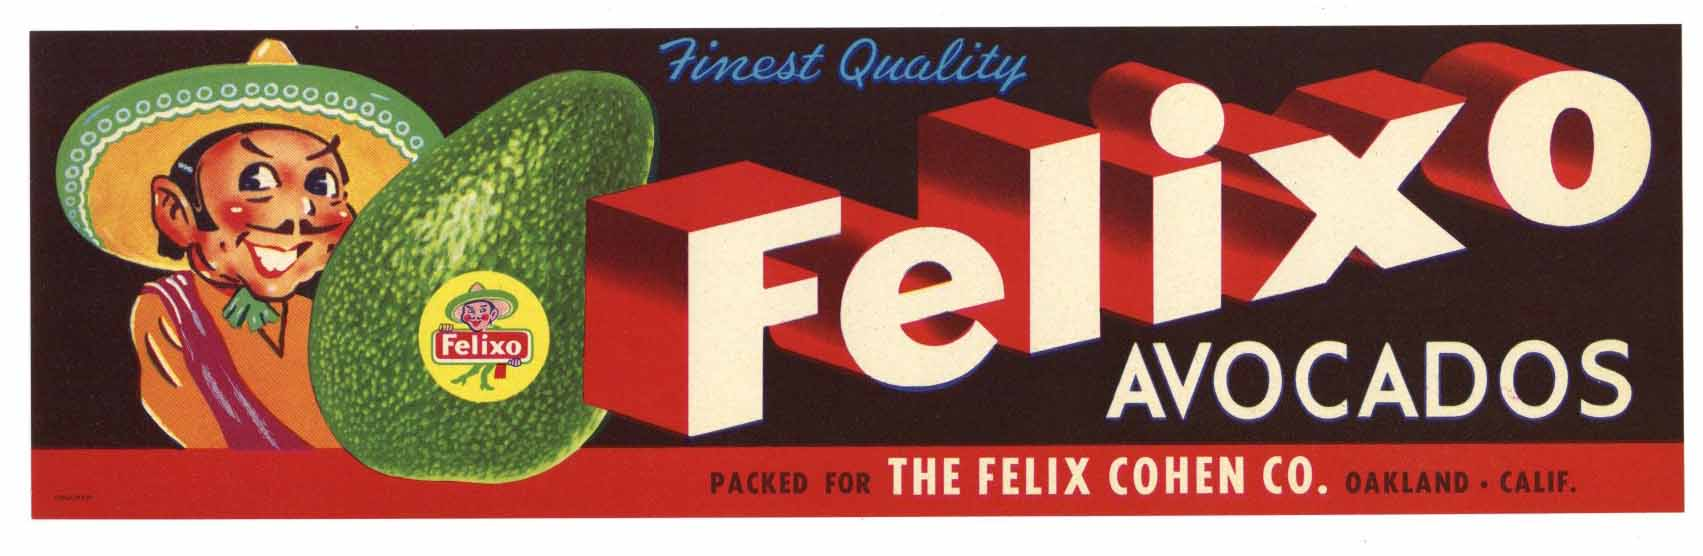 Felixo Brand Vintage Avocado Crate Label